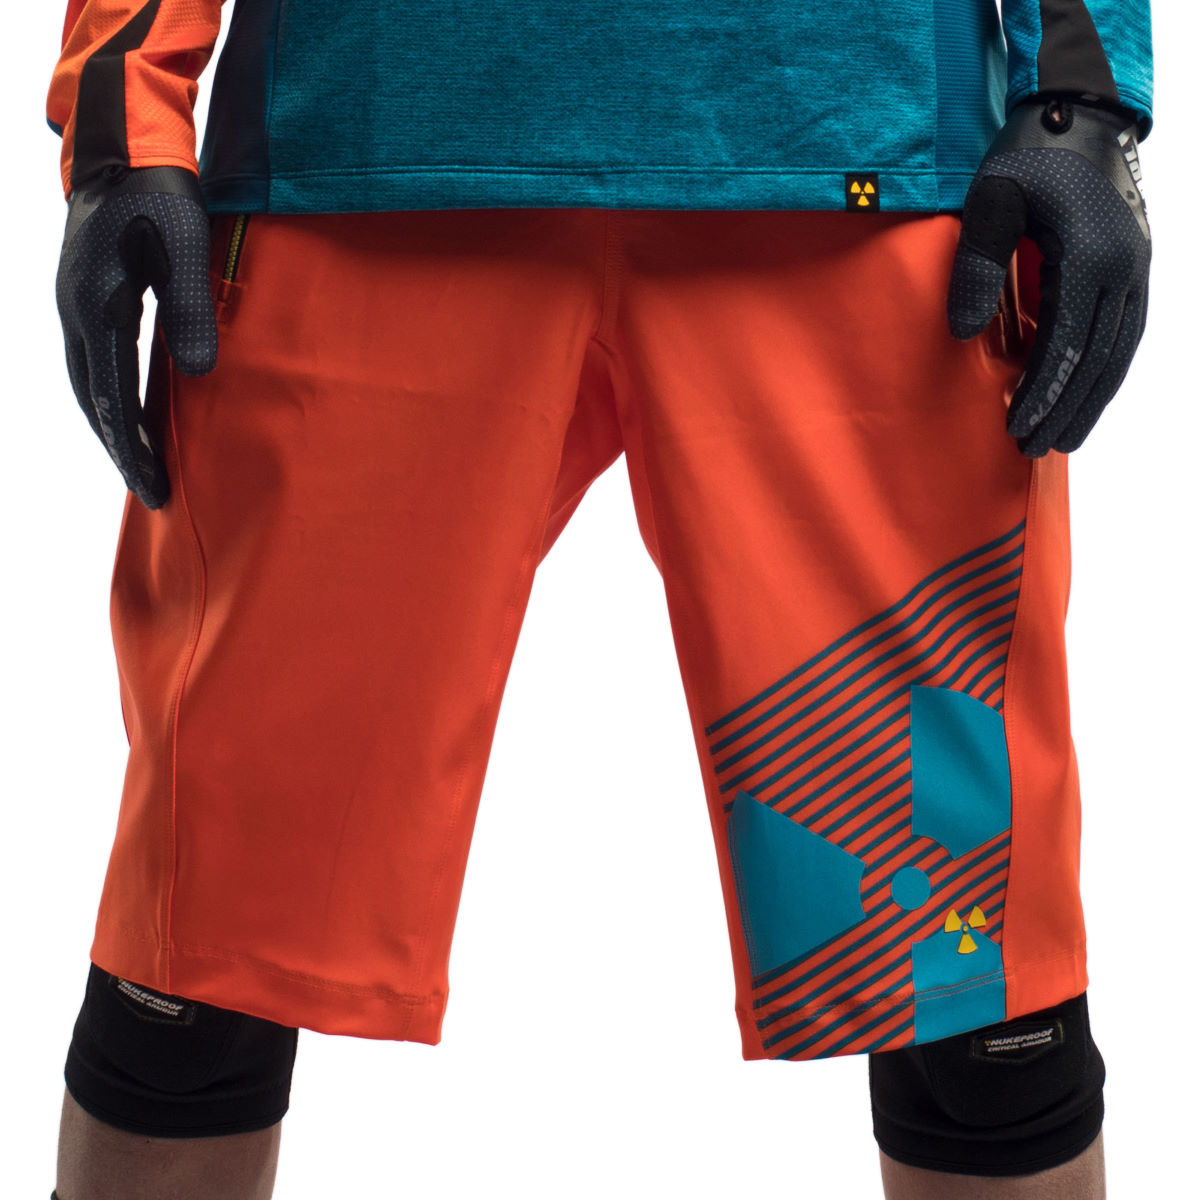 Short Nukeproof Kashmir NP - Large Orange/Blue Shorts amples